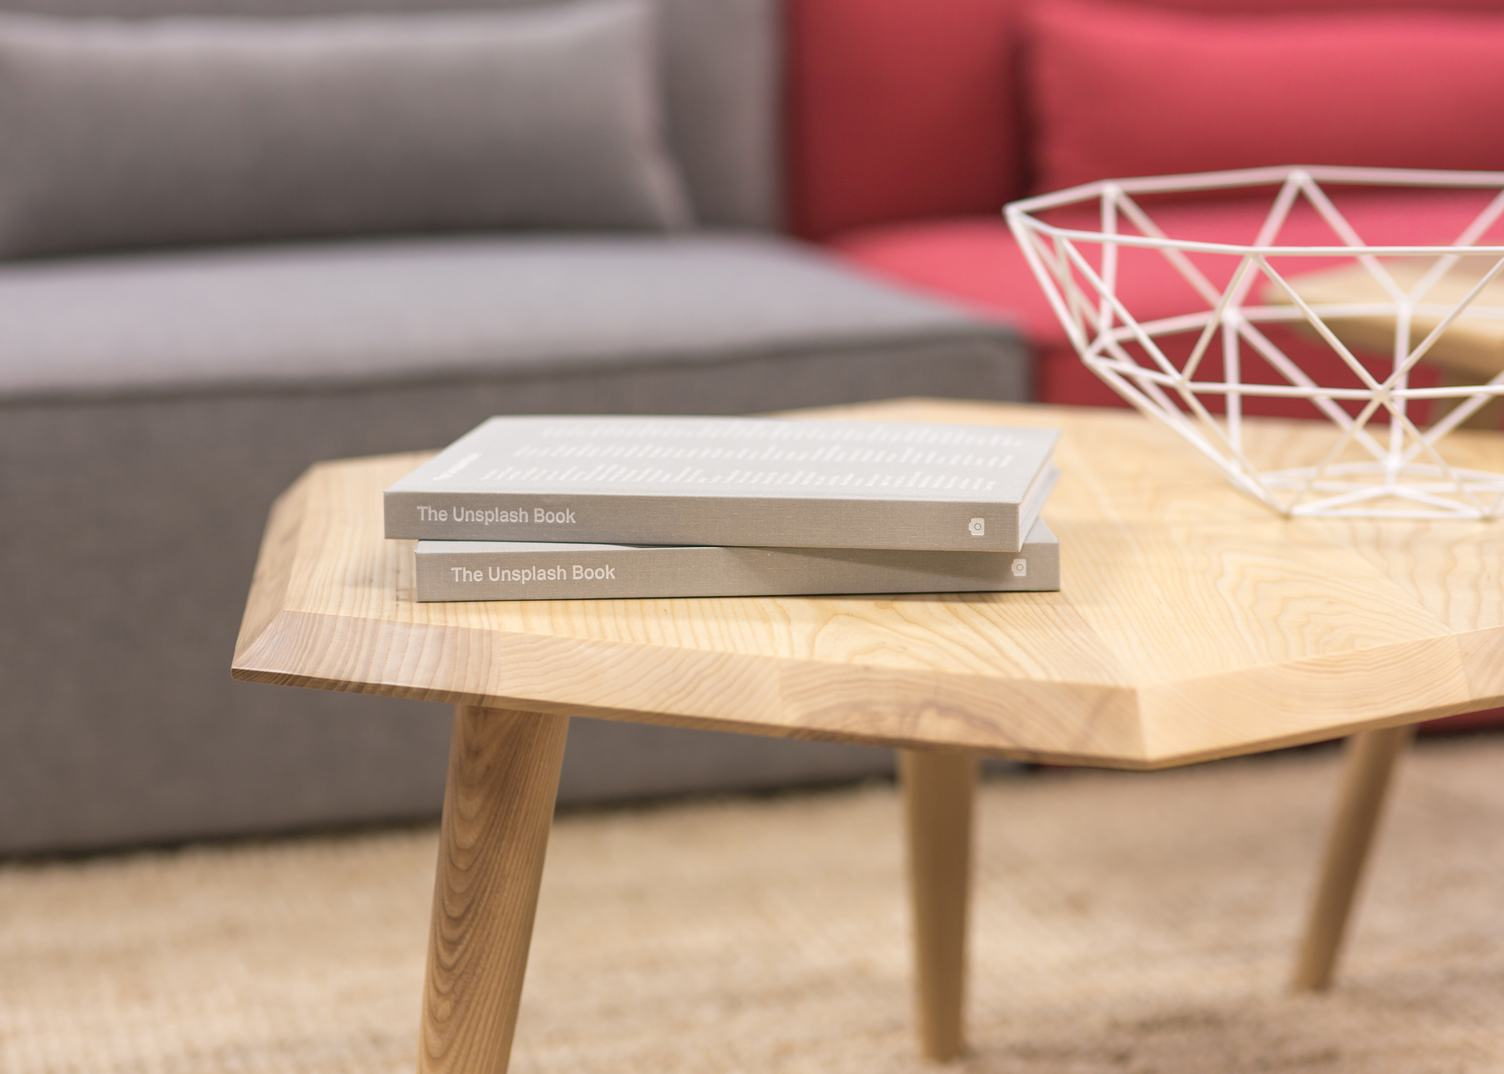 Books on Wooden Table in the Room